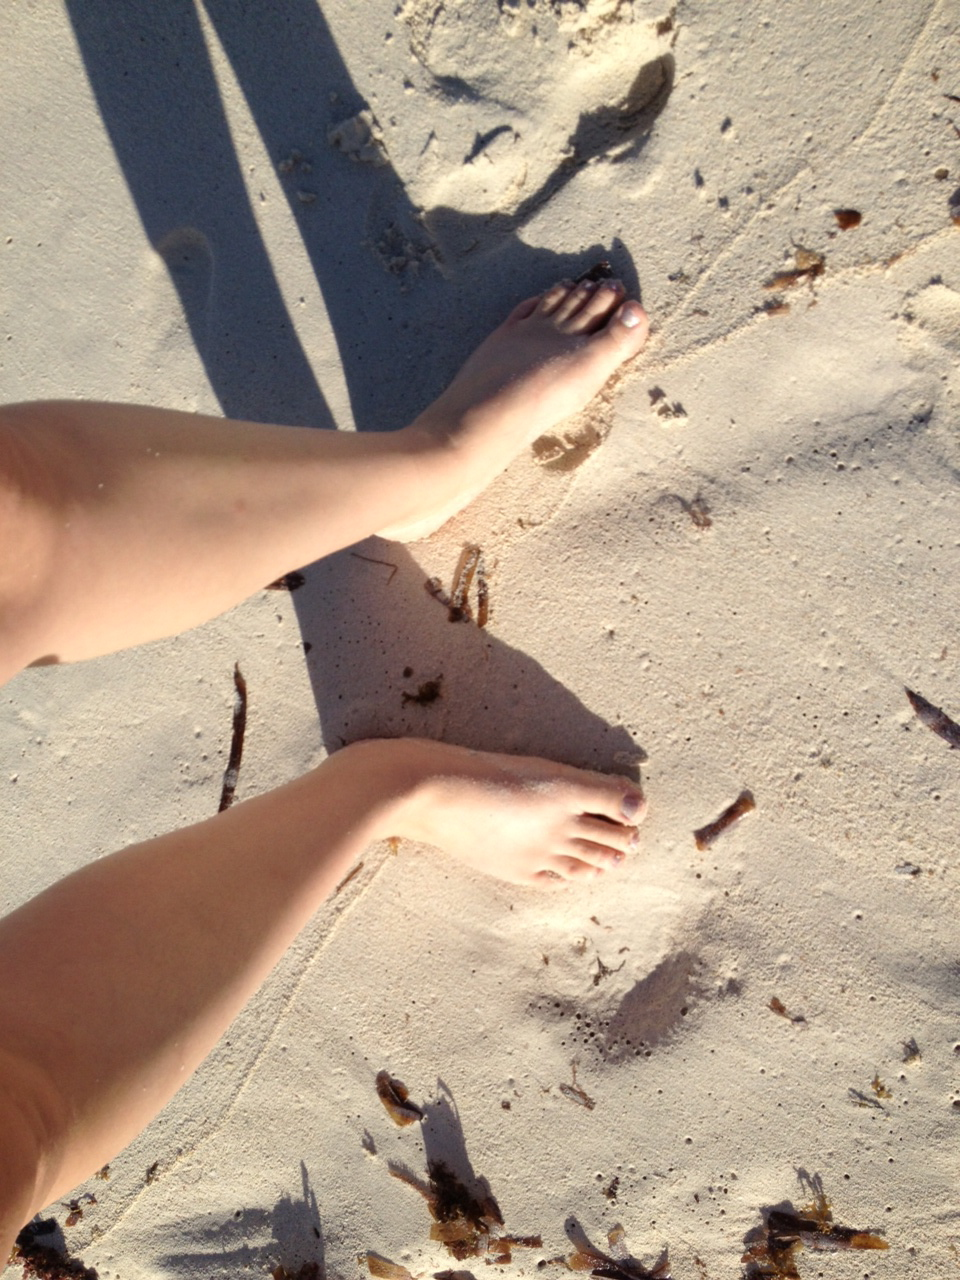 feet in the sand.jpeg